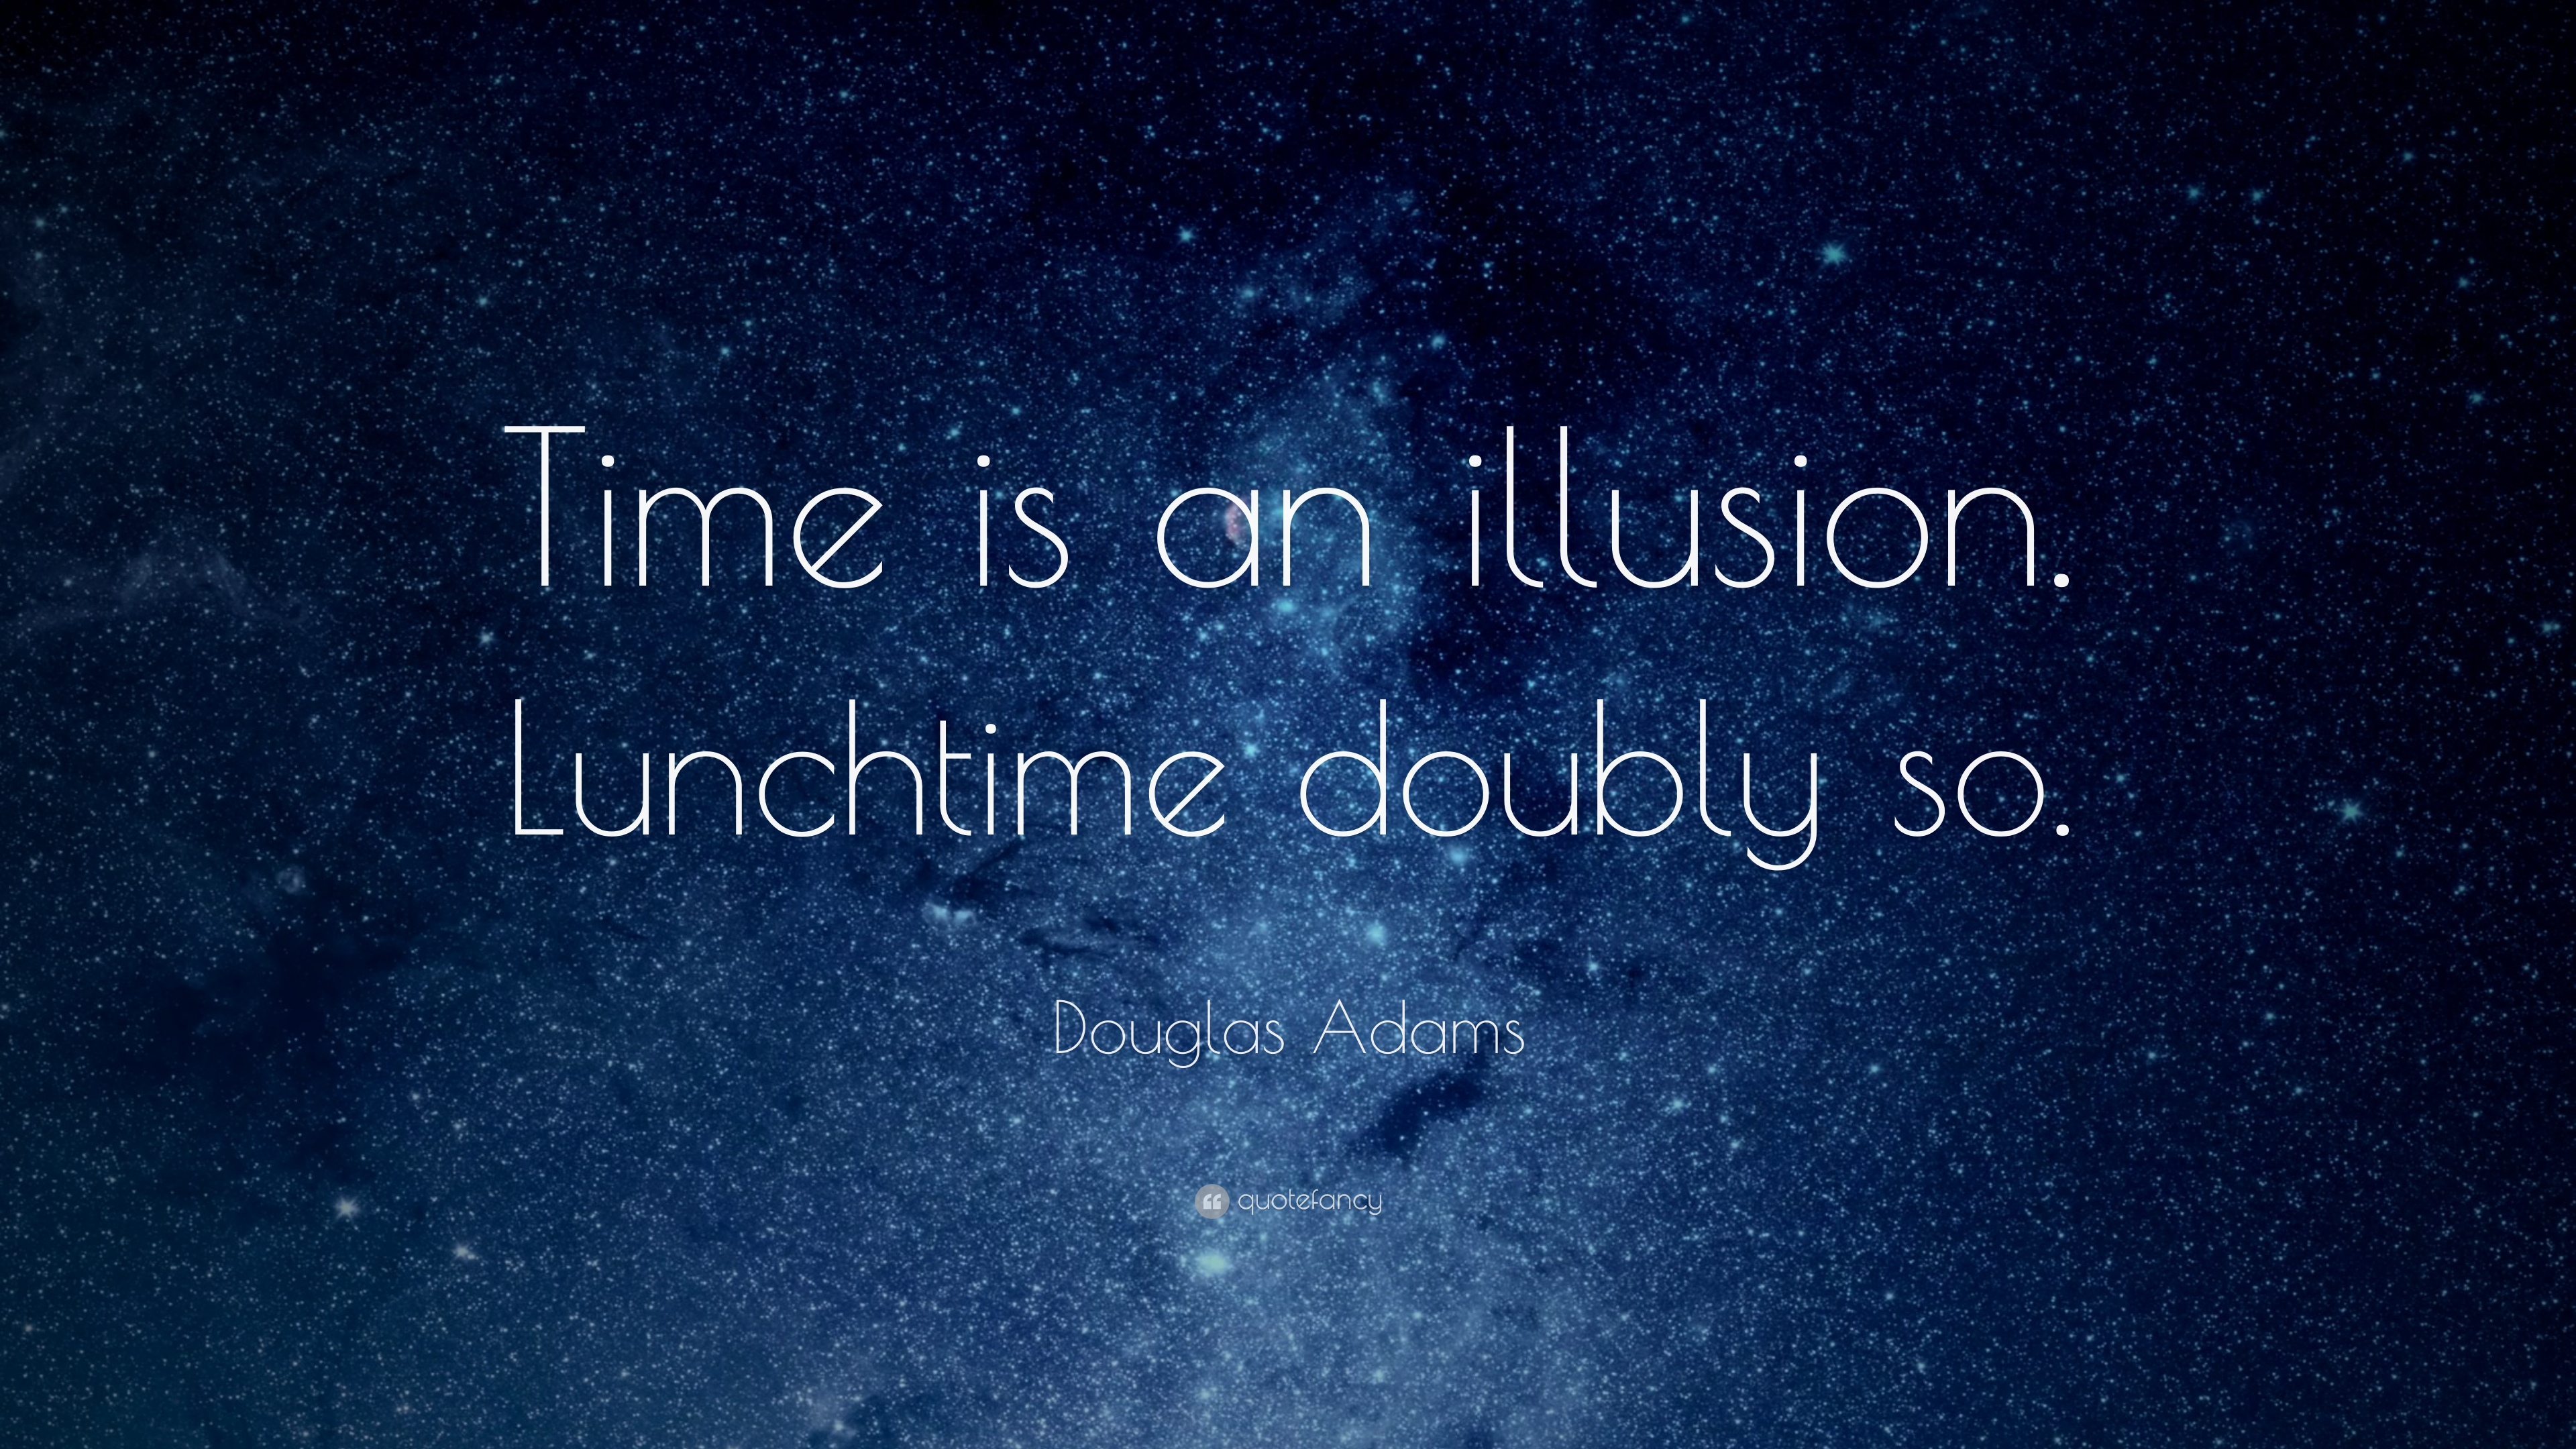 Douglas Adams Is Time an Illusion Lunchtime Doubly So